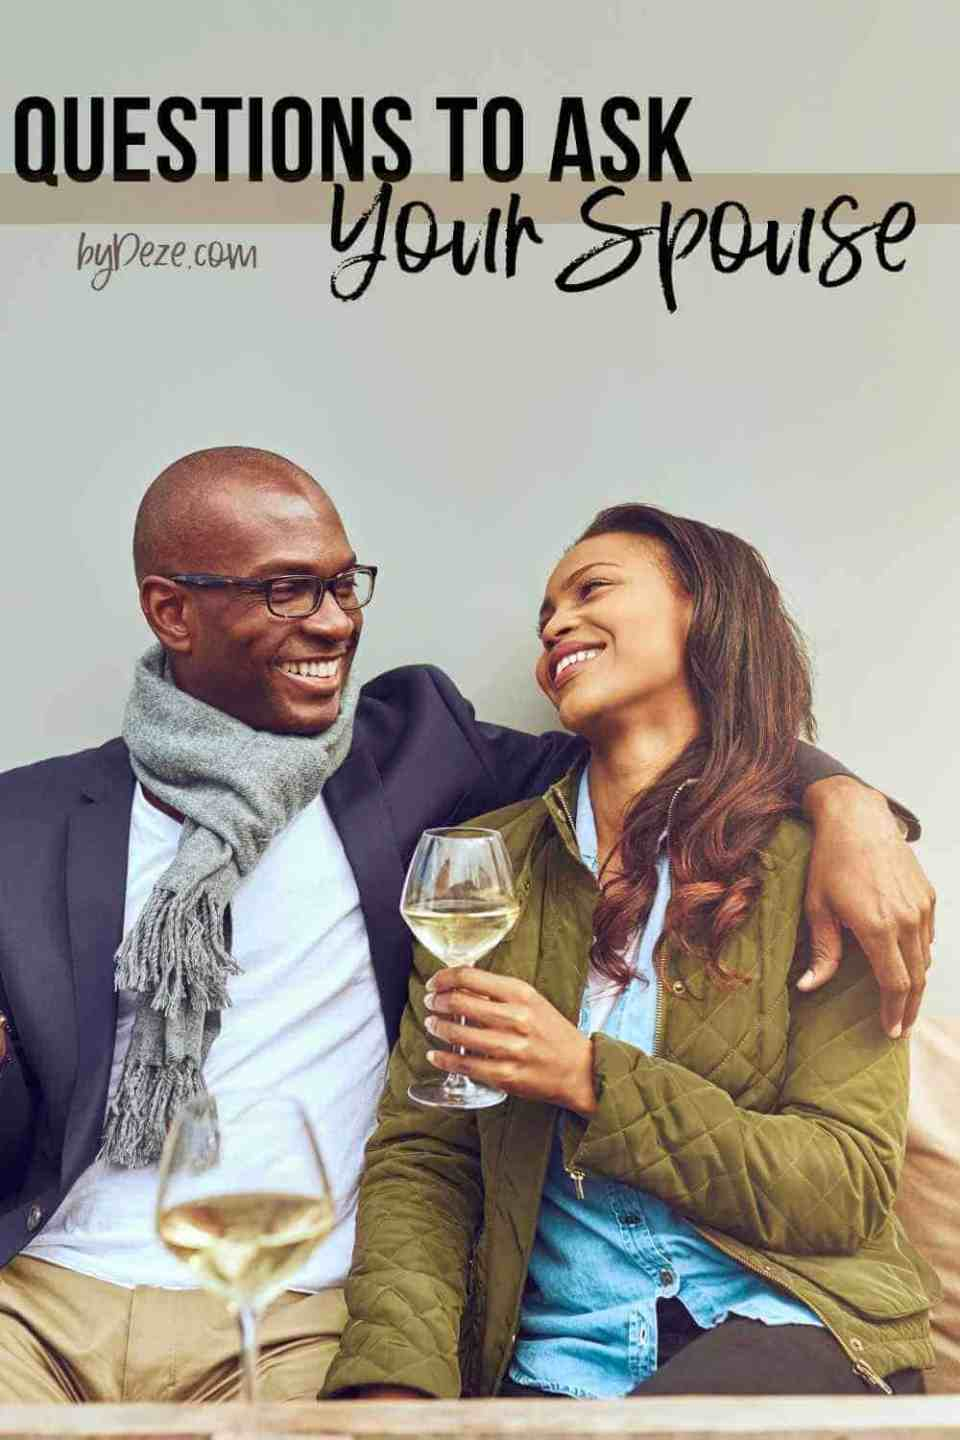 questions to ask your spouse during a date